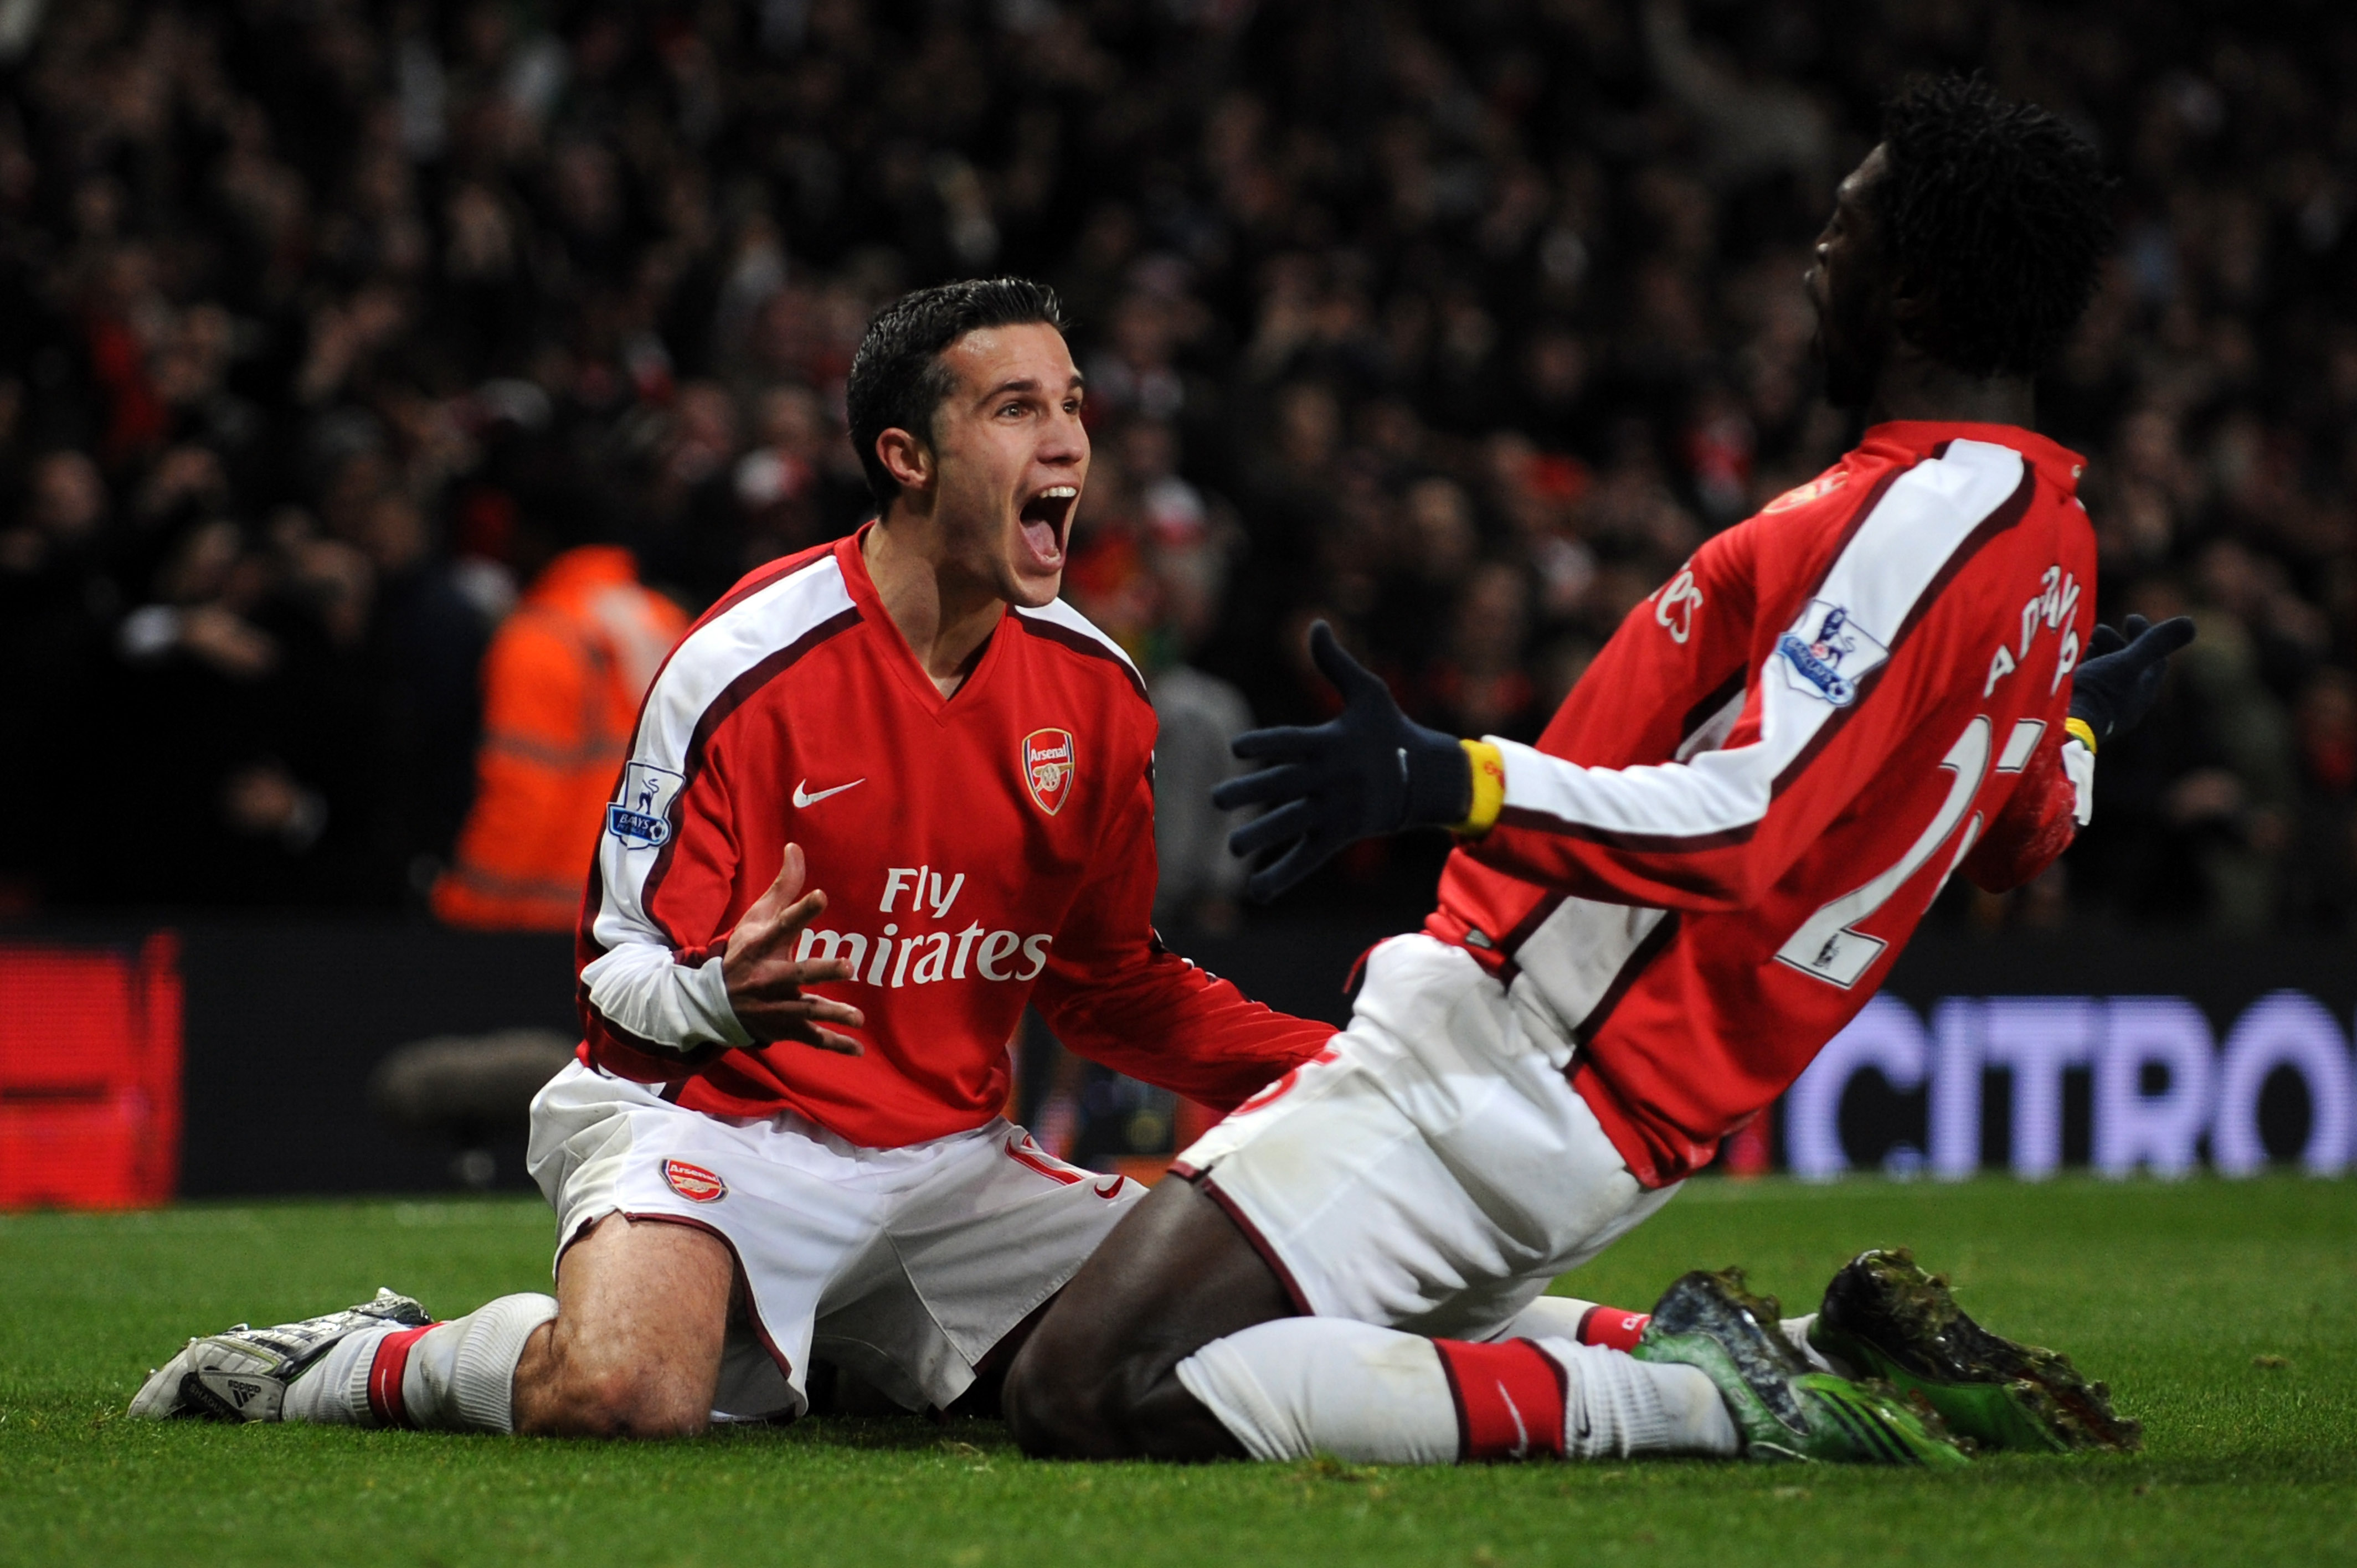 LONDON - OCTOBER 29:Robin Van Persie of Arsenal celebrates with hs team mate Emmanuel Adebayor of Arsenal after Van Persie scored during the Barclays Premier League match between Arsenal and Tottenham Hotspur at the Emirates Stadium on October 29, 2008 in